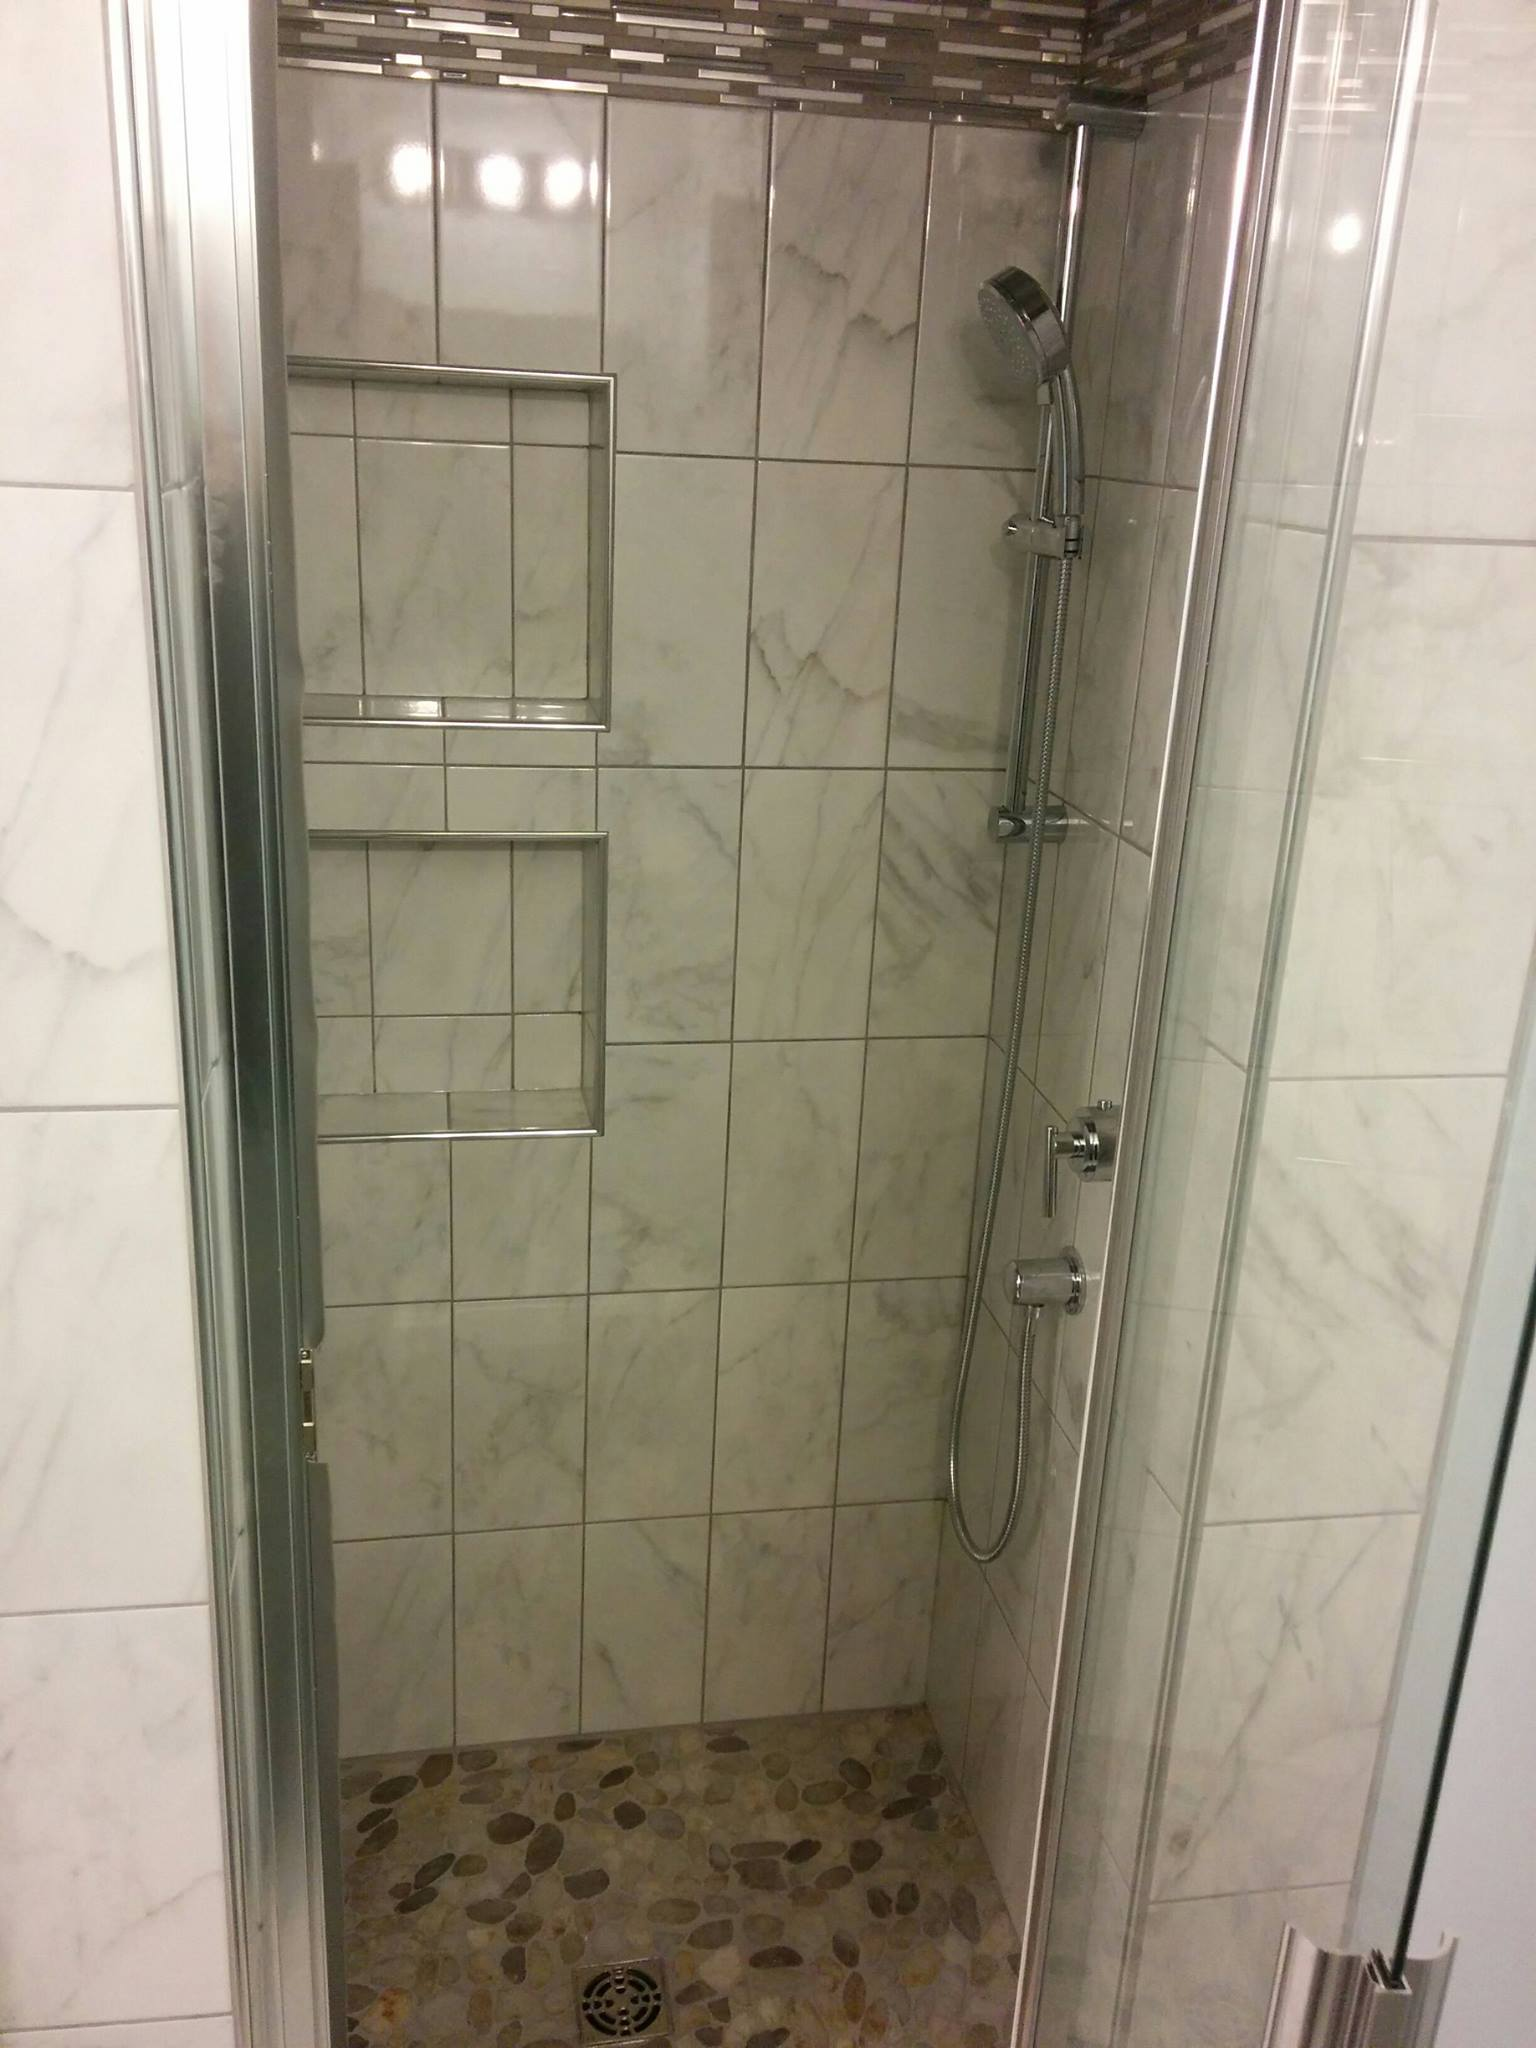 The client chose a Grohe shower trim kit with a rain head for a great showering experience.